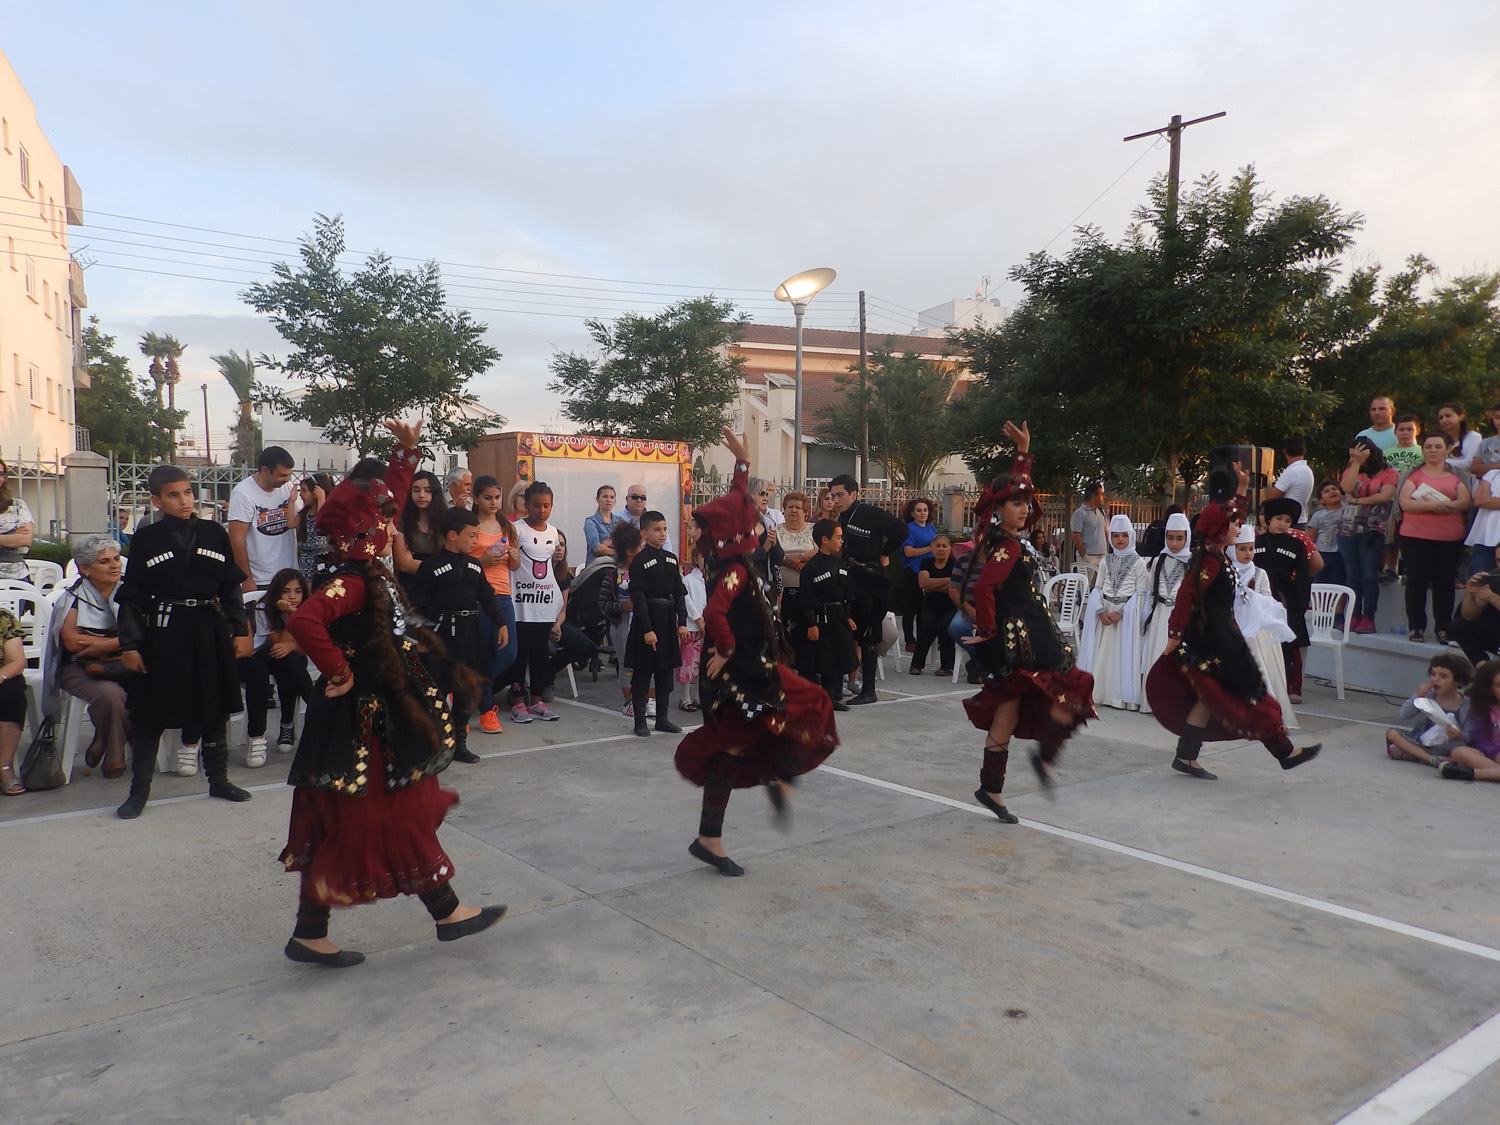 multicultural_Childrens_Festival_Ayios_Dhometios28516_27